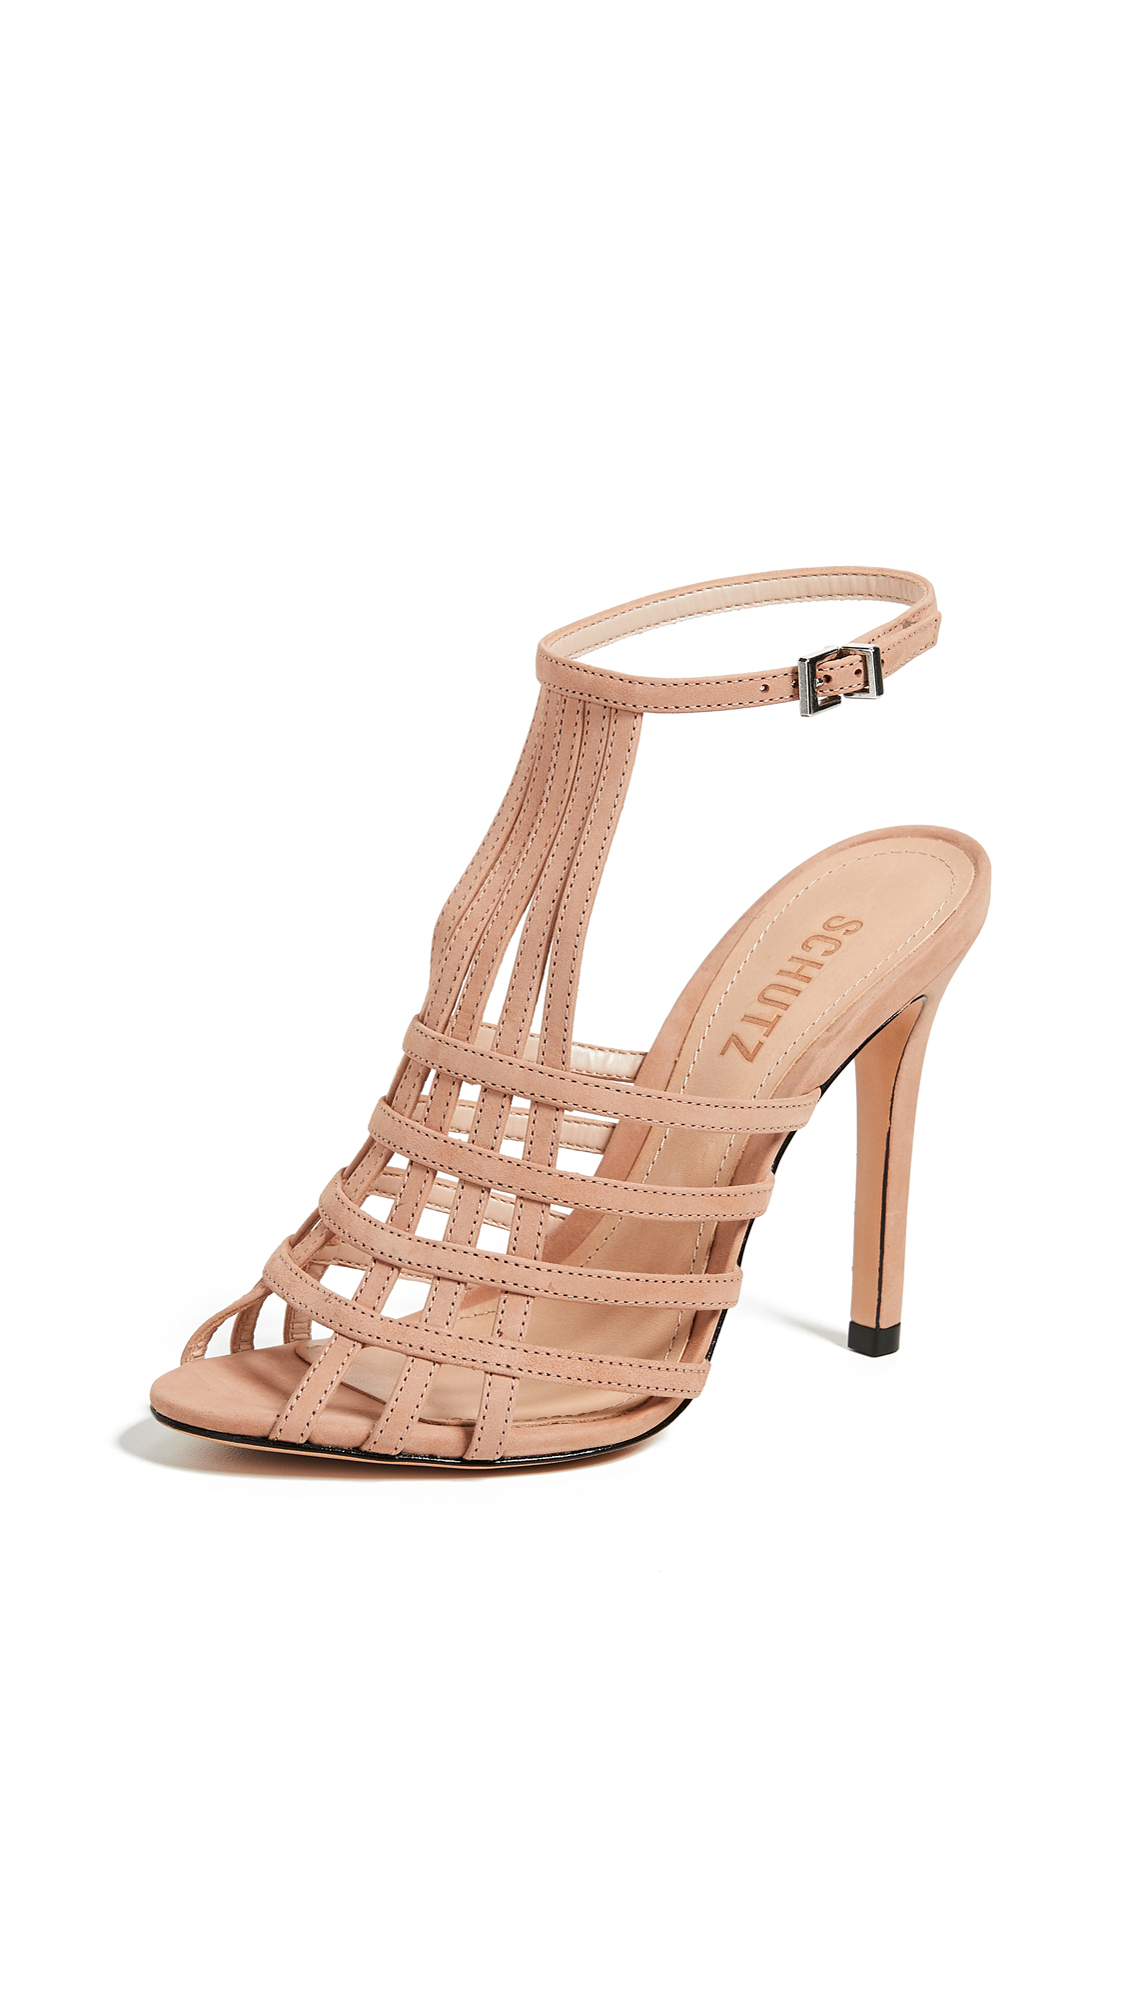 Photo of Schutz Joely Strappy Sandal Pumps online shoes sales